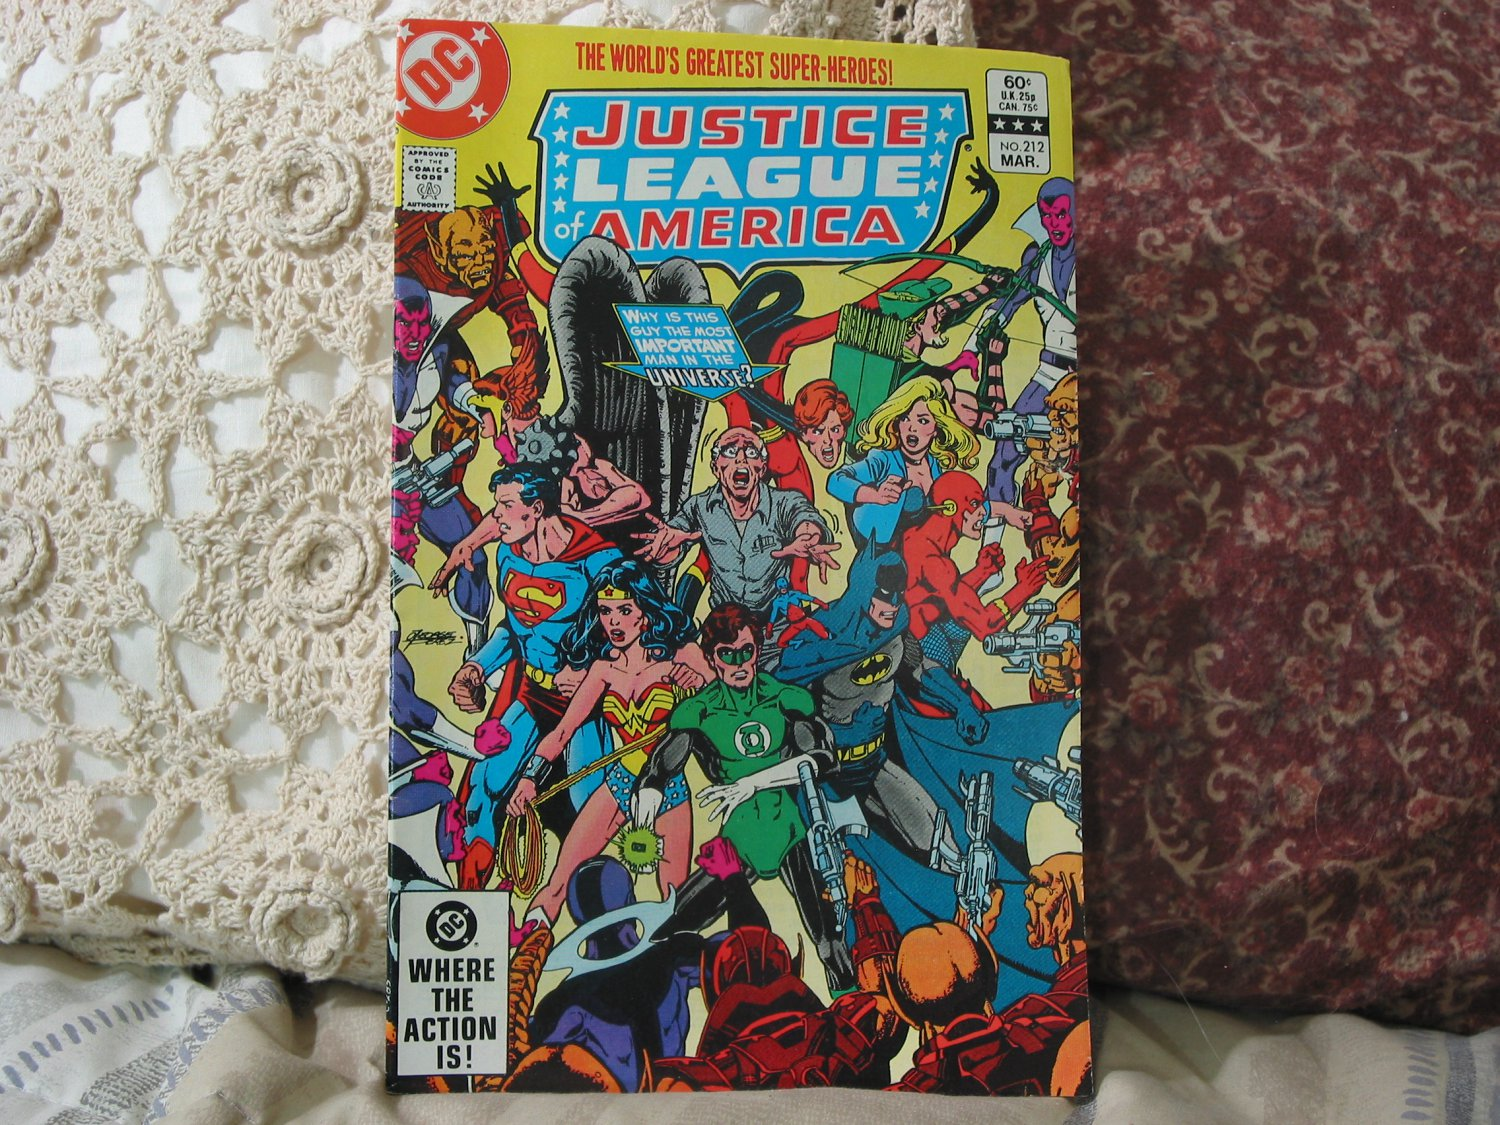 JUSTICE LEAGUE AMERICA DC Comic Book Vol 24 No 212 1983